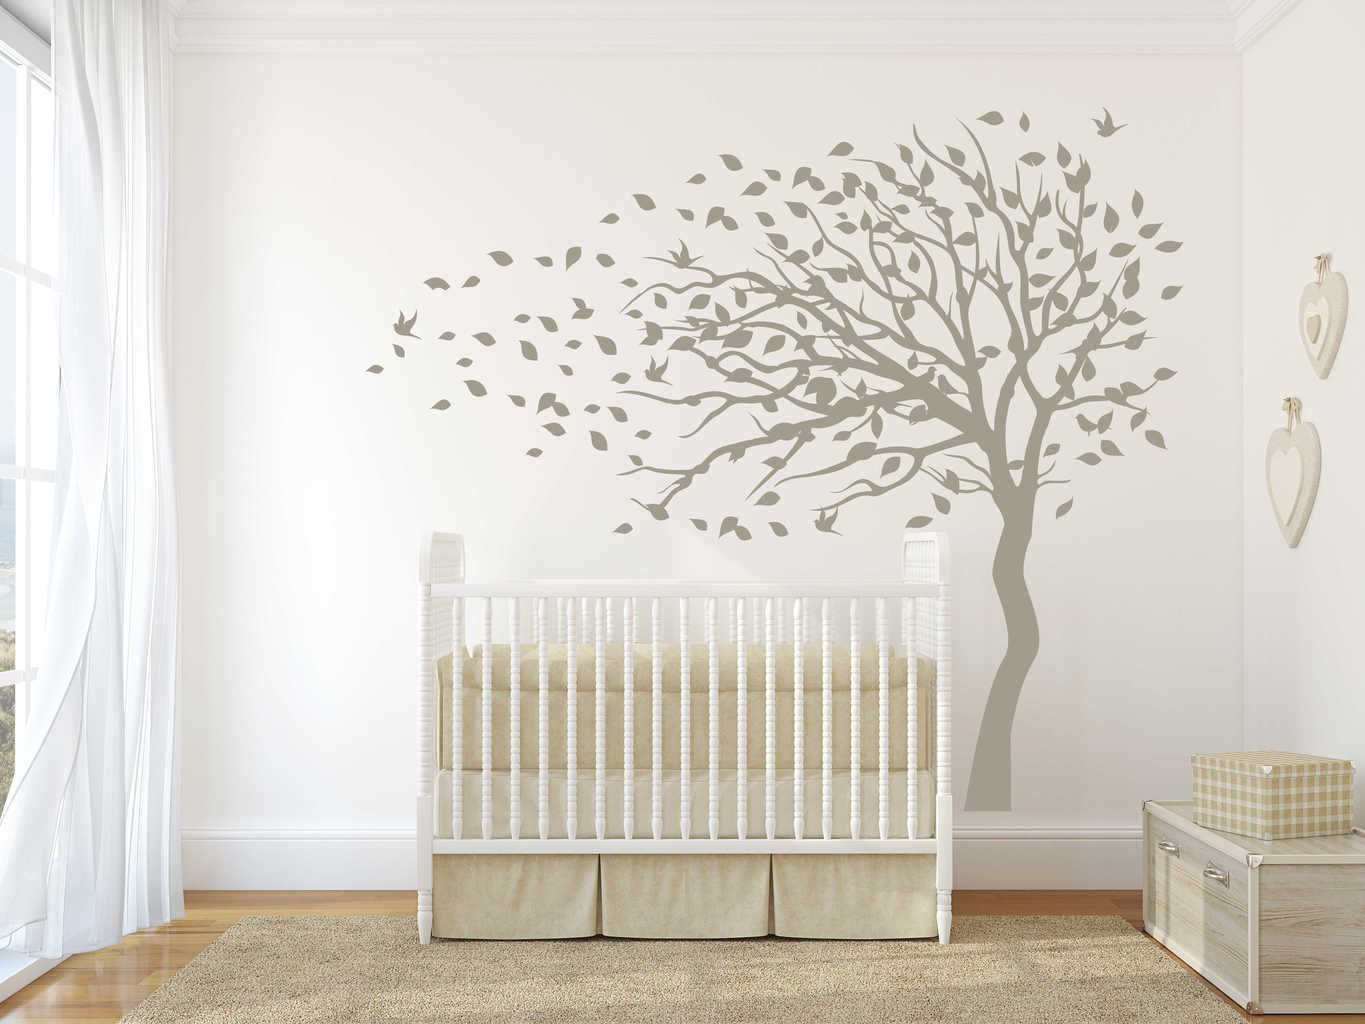 Designer Wall Decals Uniquely Made In Ireland Free Shipping